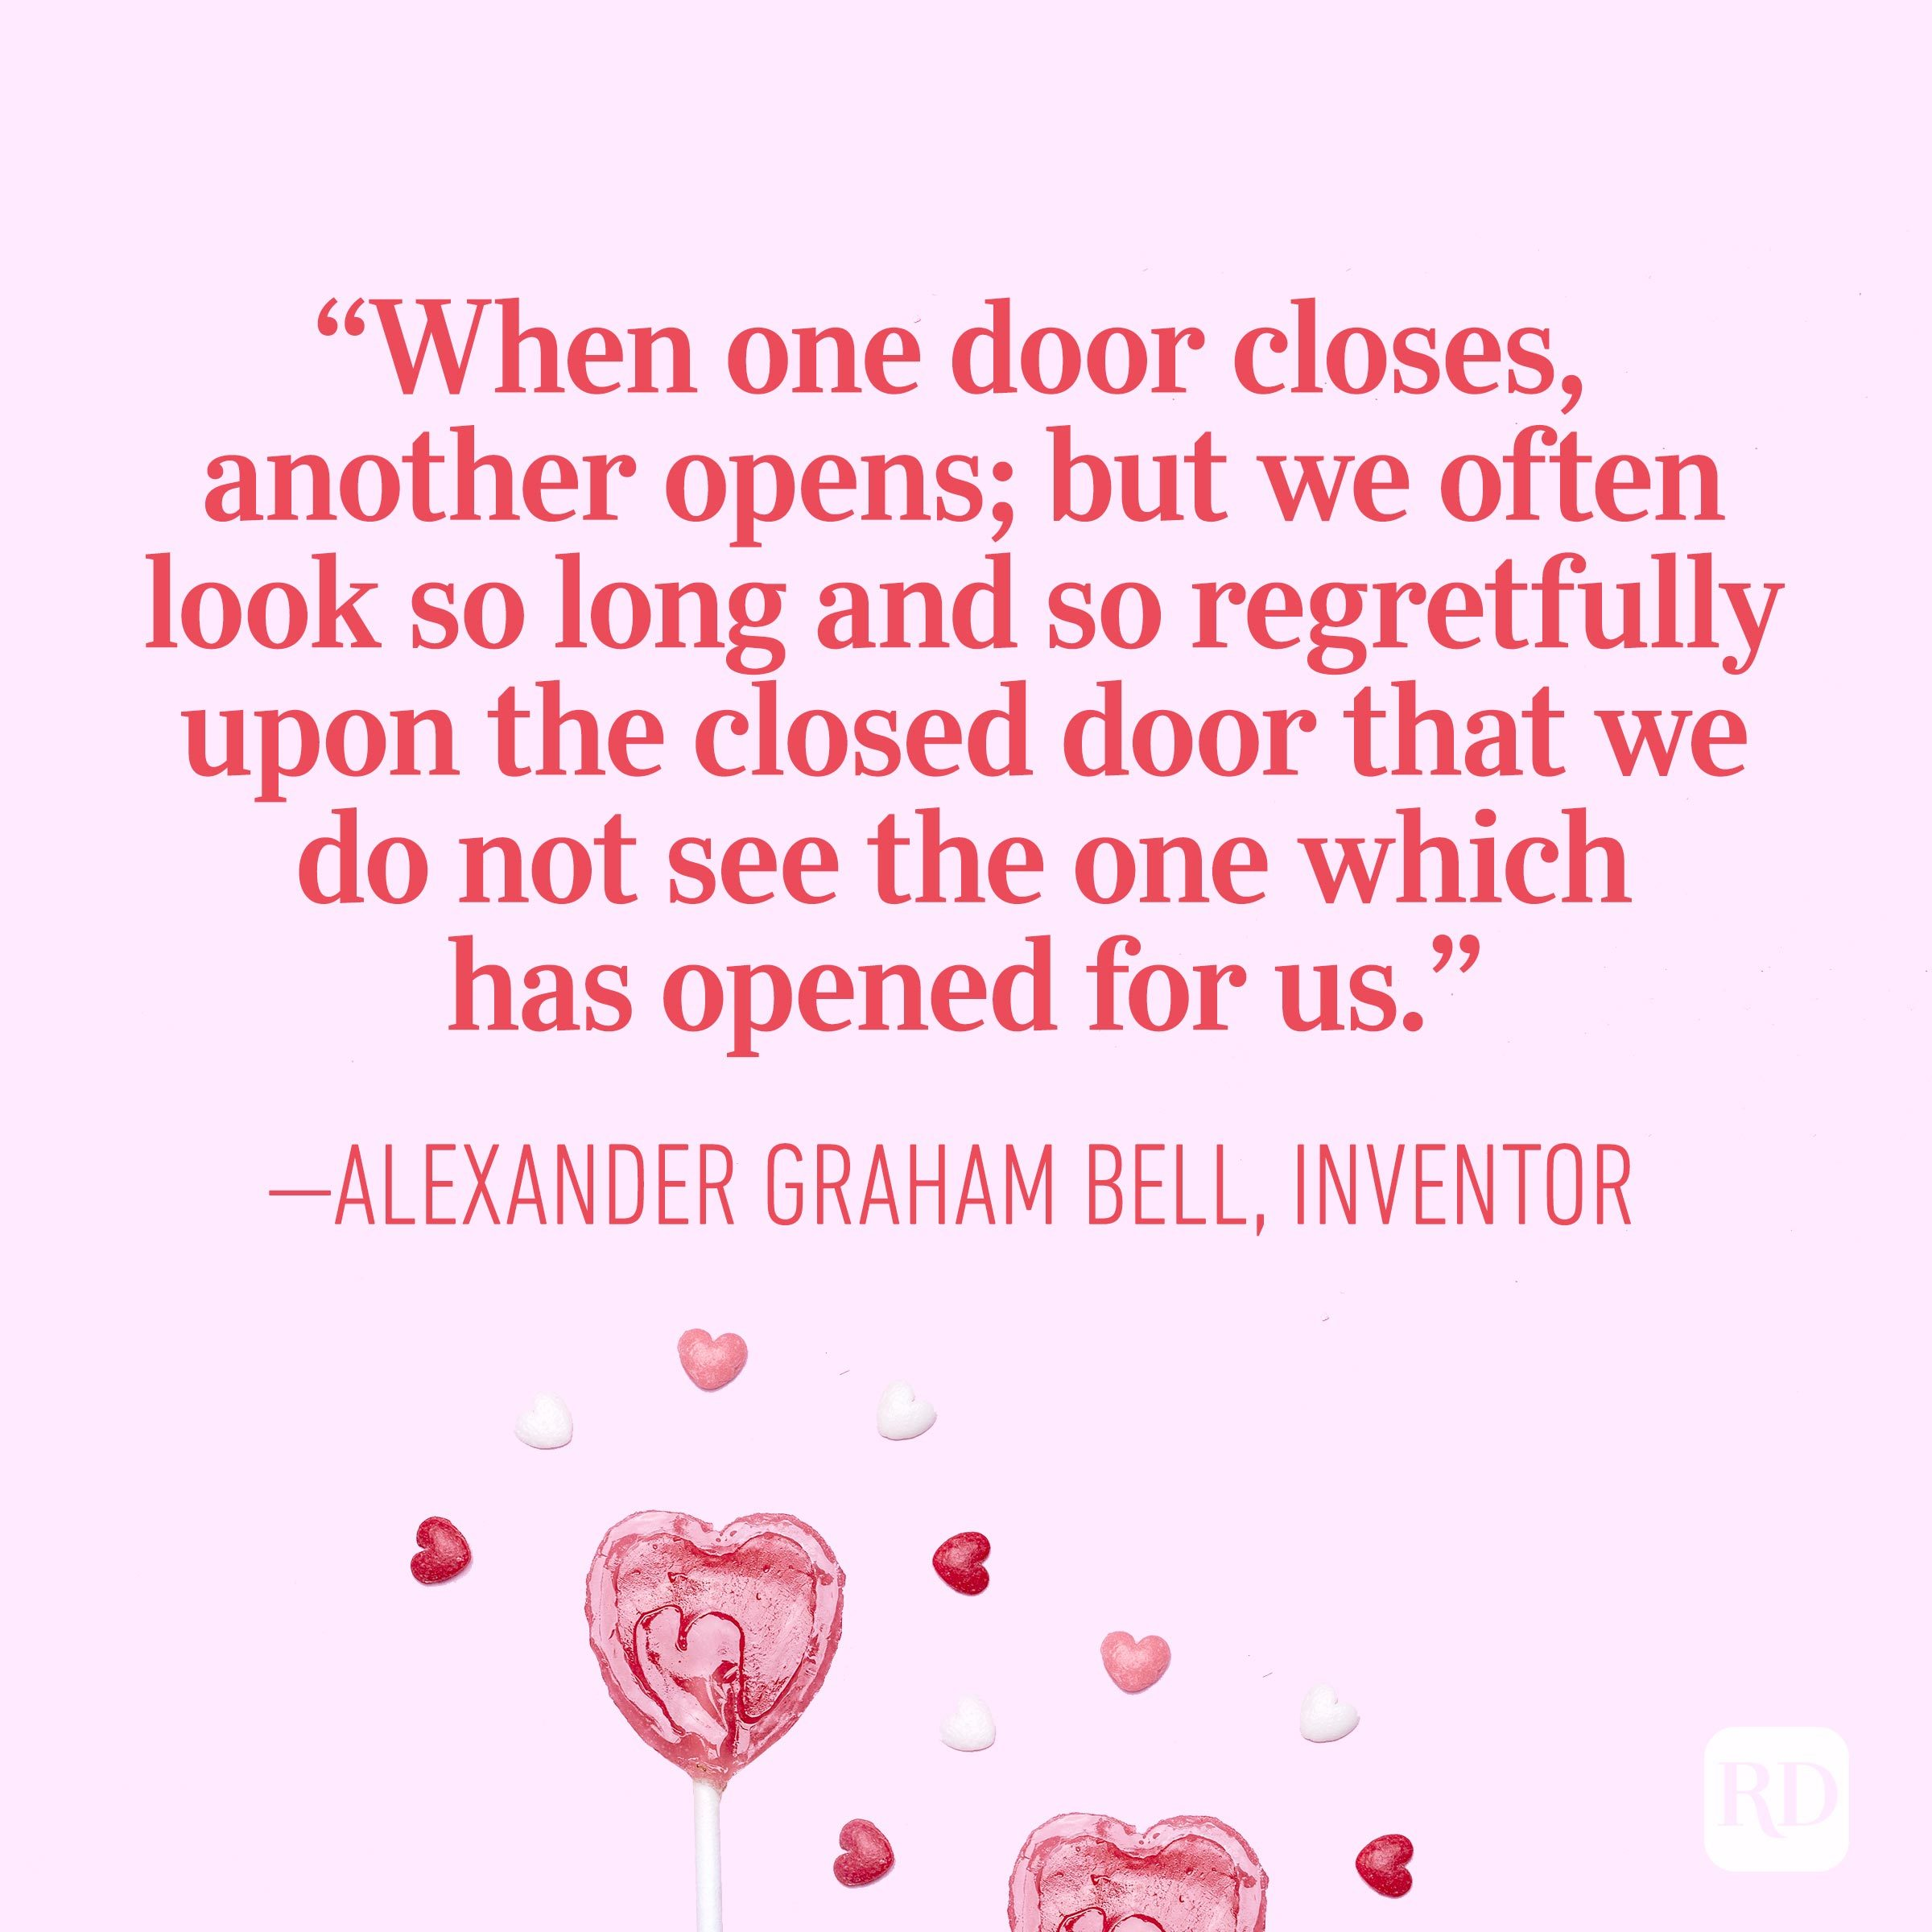 """When one door closes, another opens; but we often look so long and so regretfully upon the closed door that we do not see the one which has opened for us"" — Alexander Graham Bell, inventor"